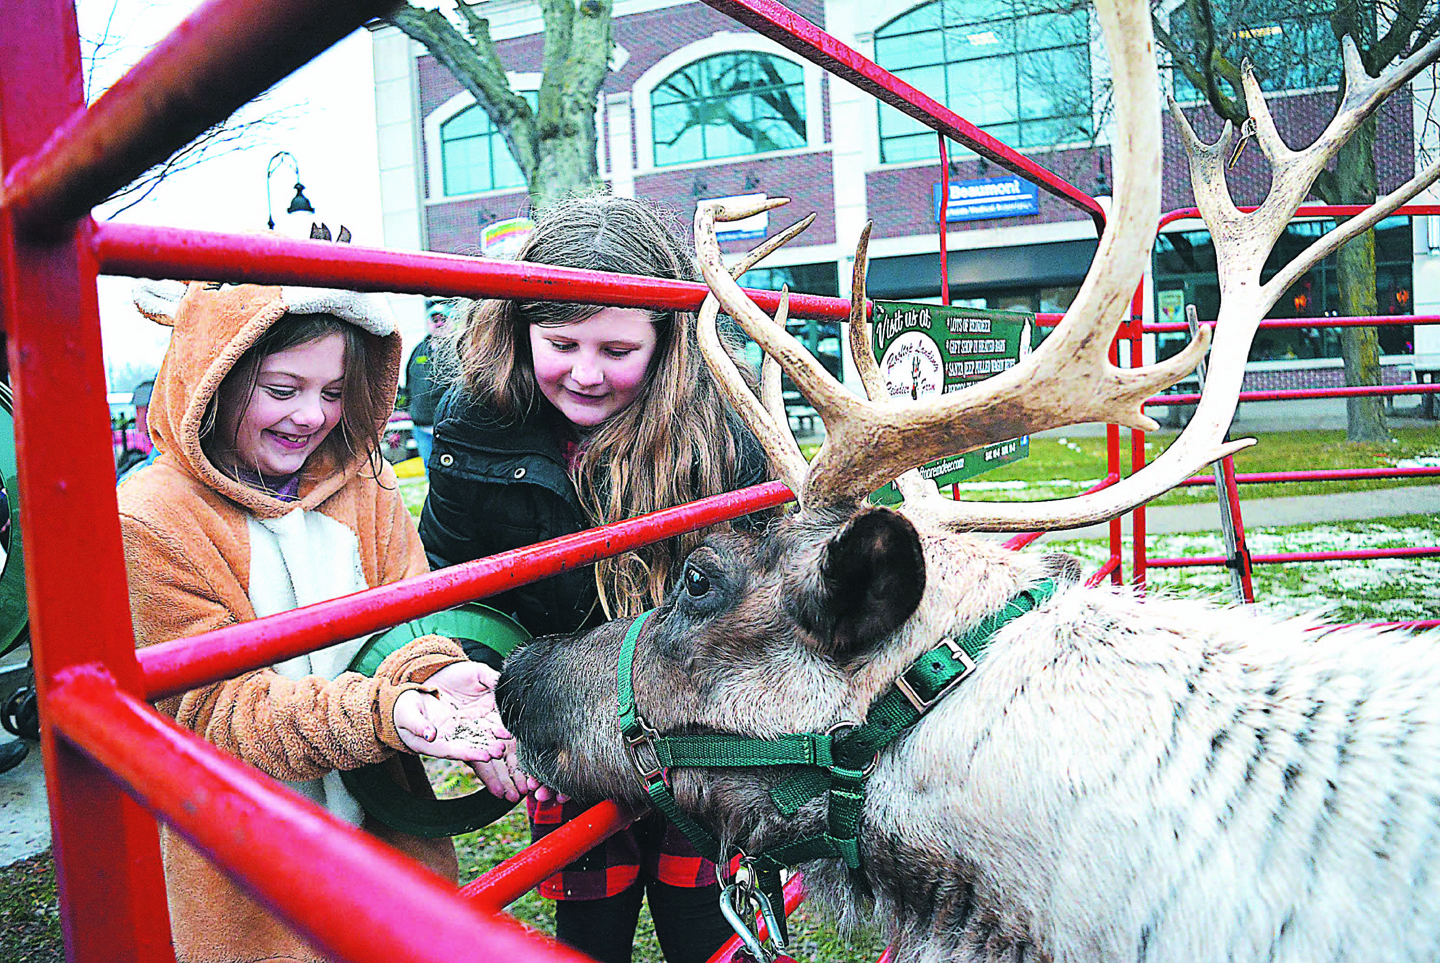 Lapeer sisters Fern (left) and Josey Hosch had fun feeding a reindeer in downtown Oxford's Centennial Park following Saturday's Christmas parade. Photo by C.J. Carnacchio.